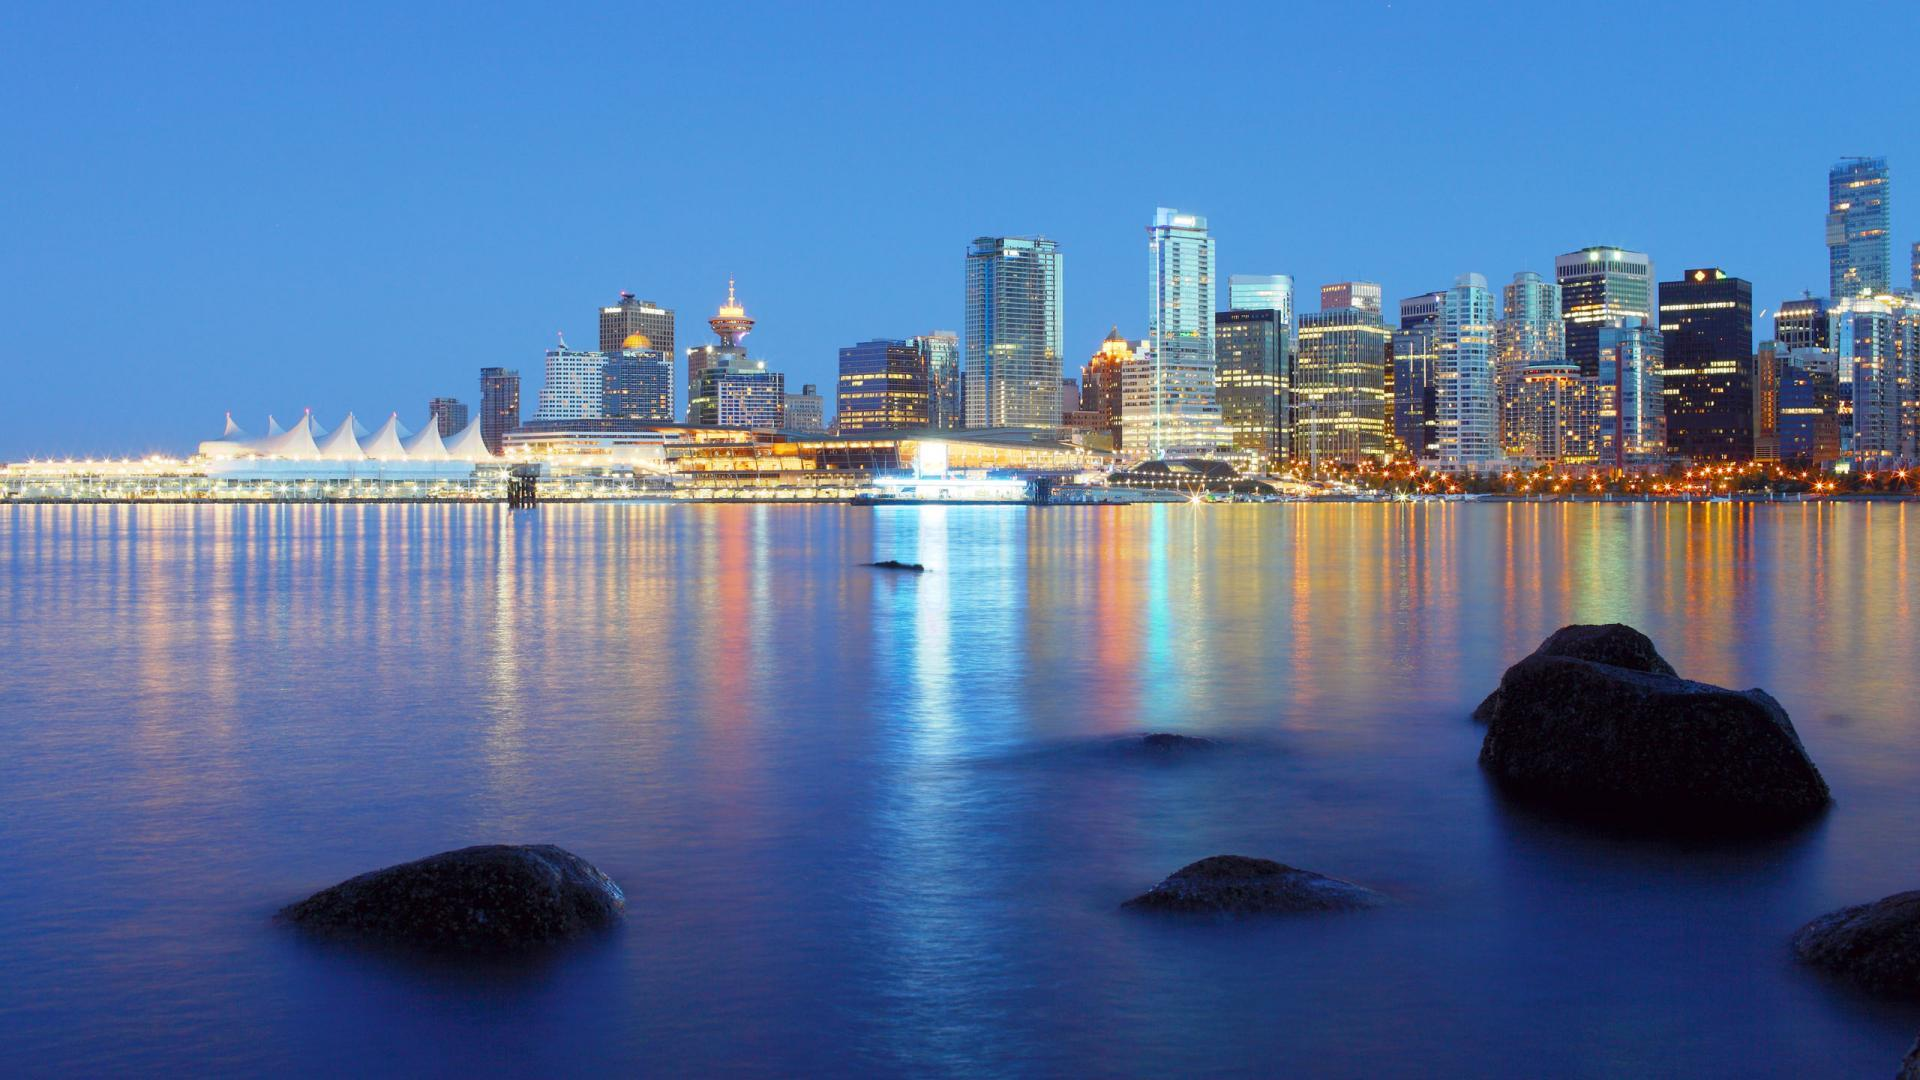 Hd Beautiful Cityscape in Lights Vancouver Wallpaper Download 1920x1080px